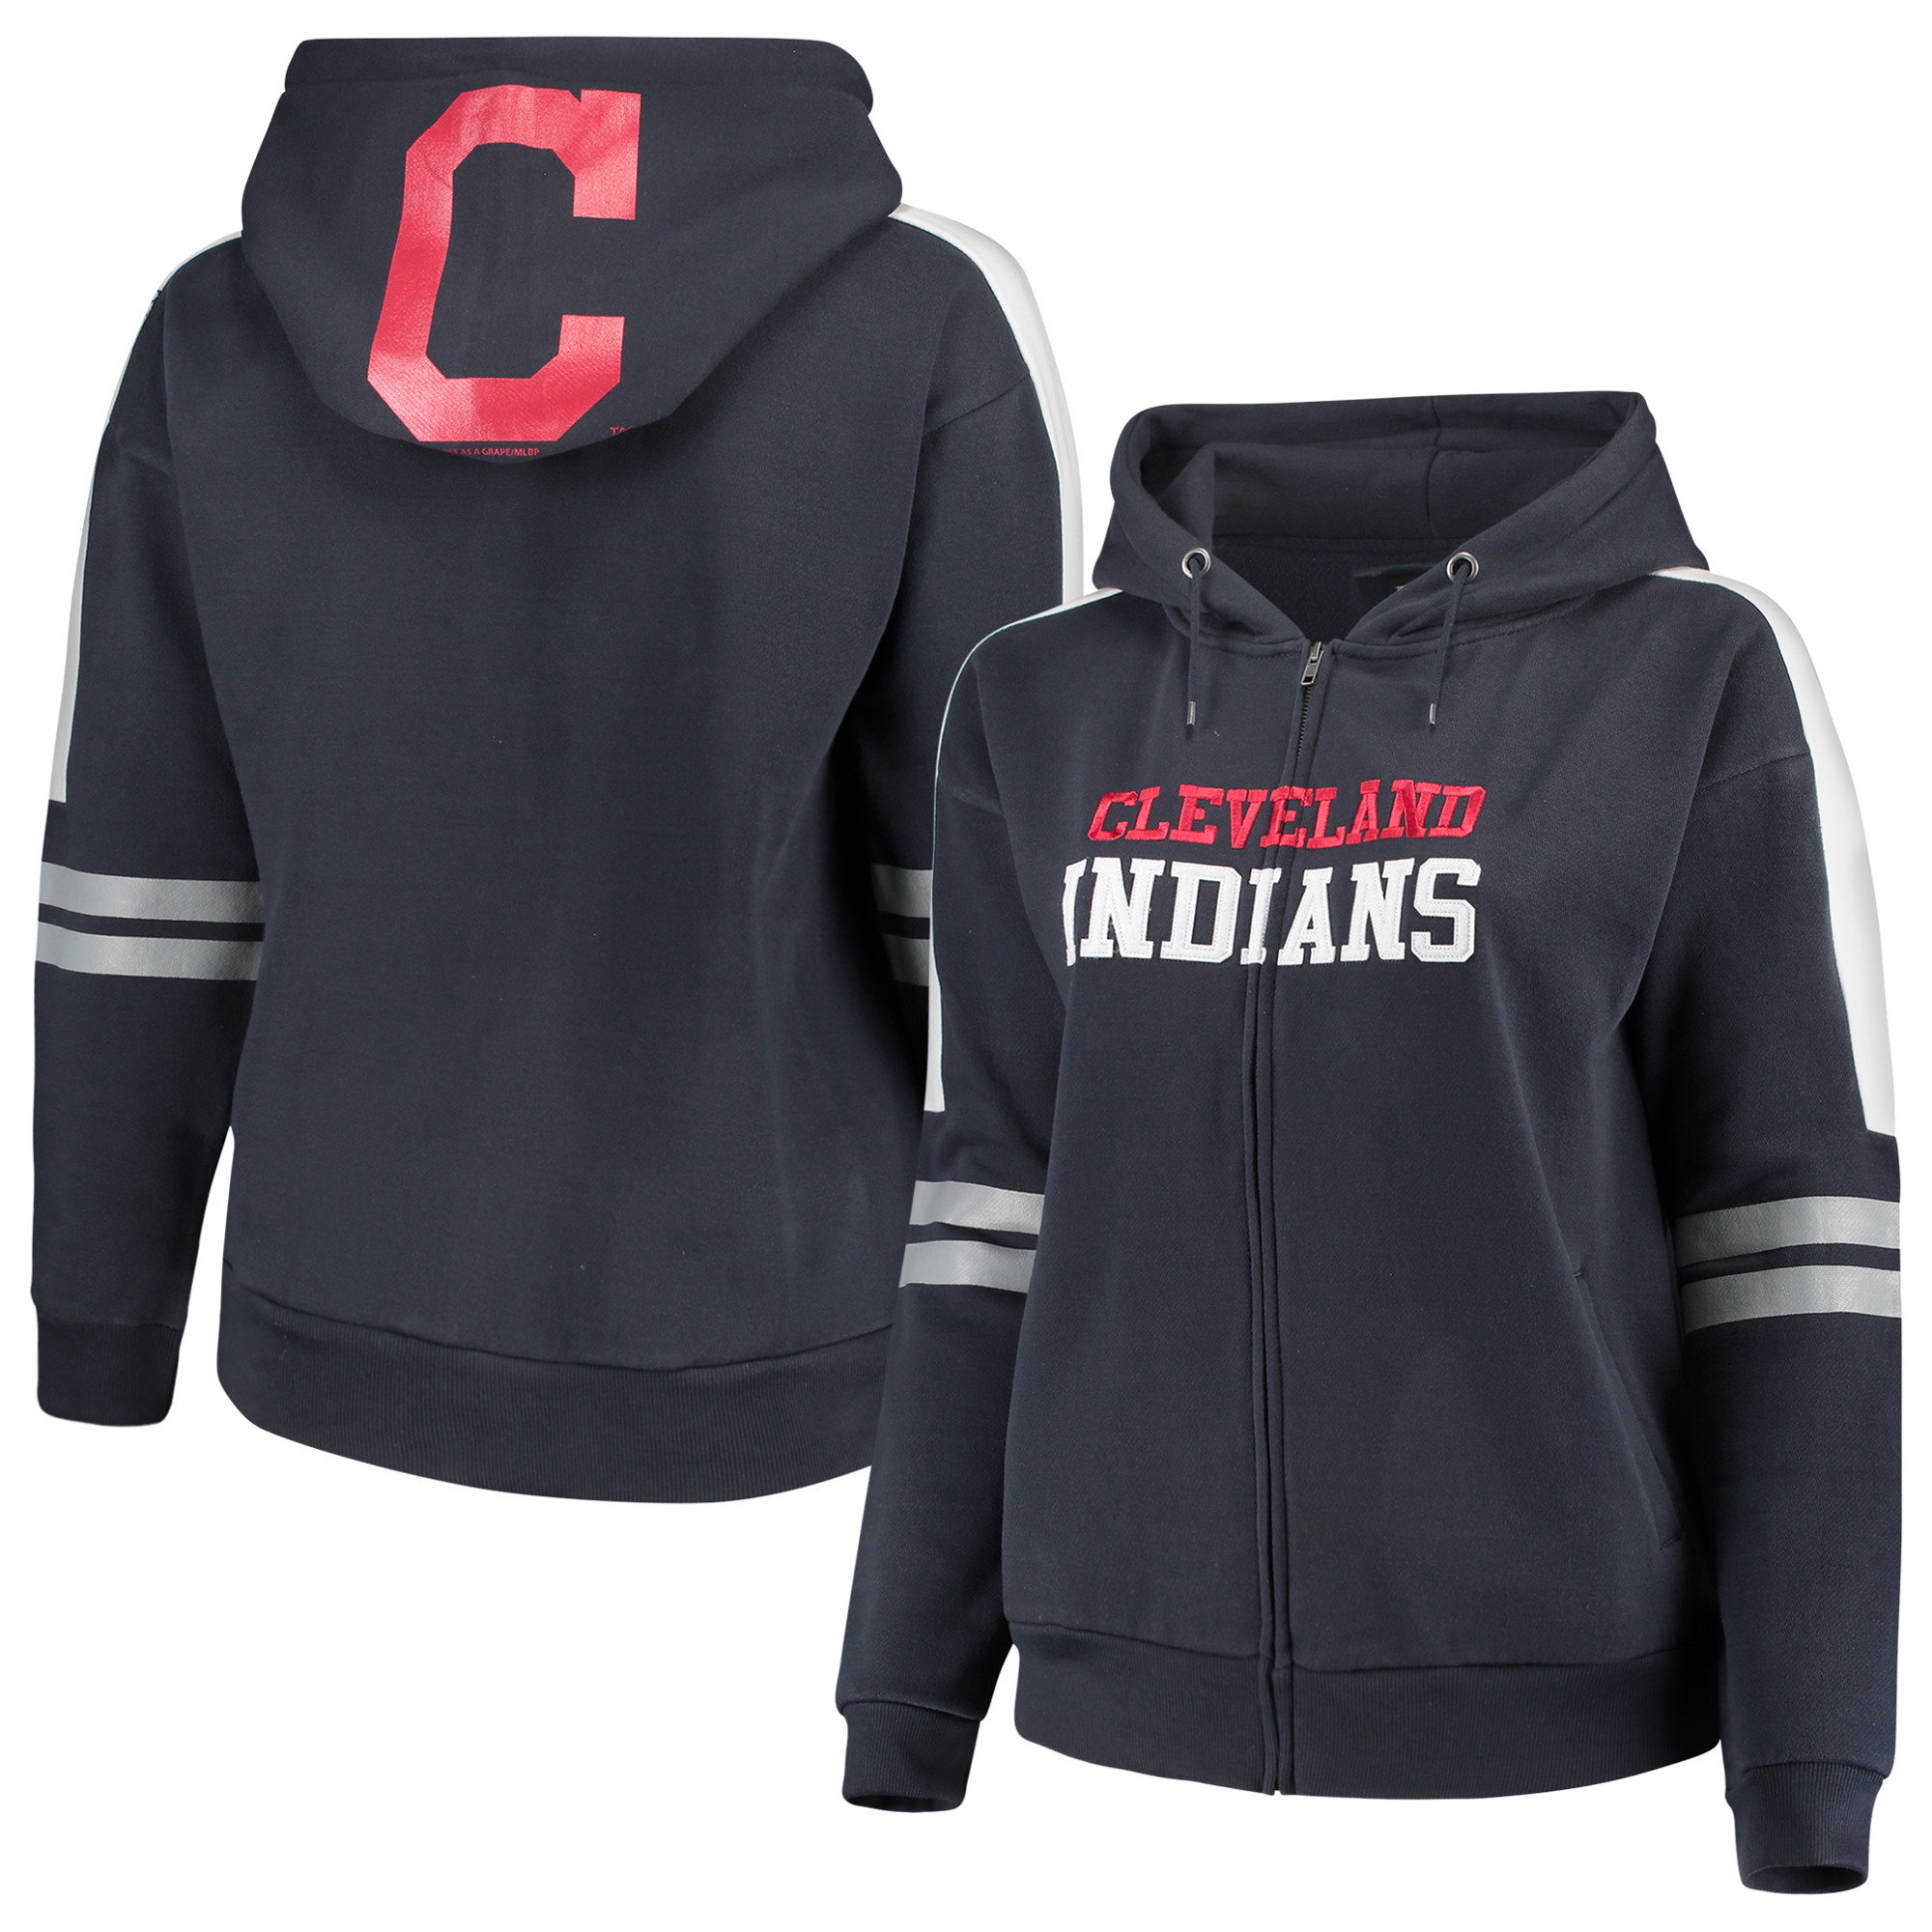 Cleveland Indians Soft As A Grape Women's Curvy Bio-Washed Full-Zip Plus Size Hoodie - Navy